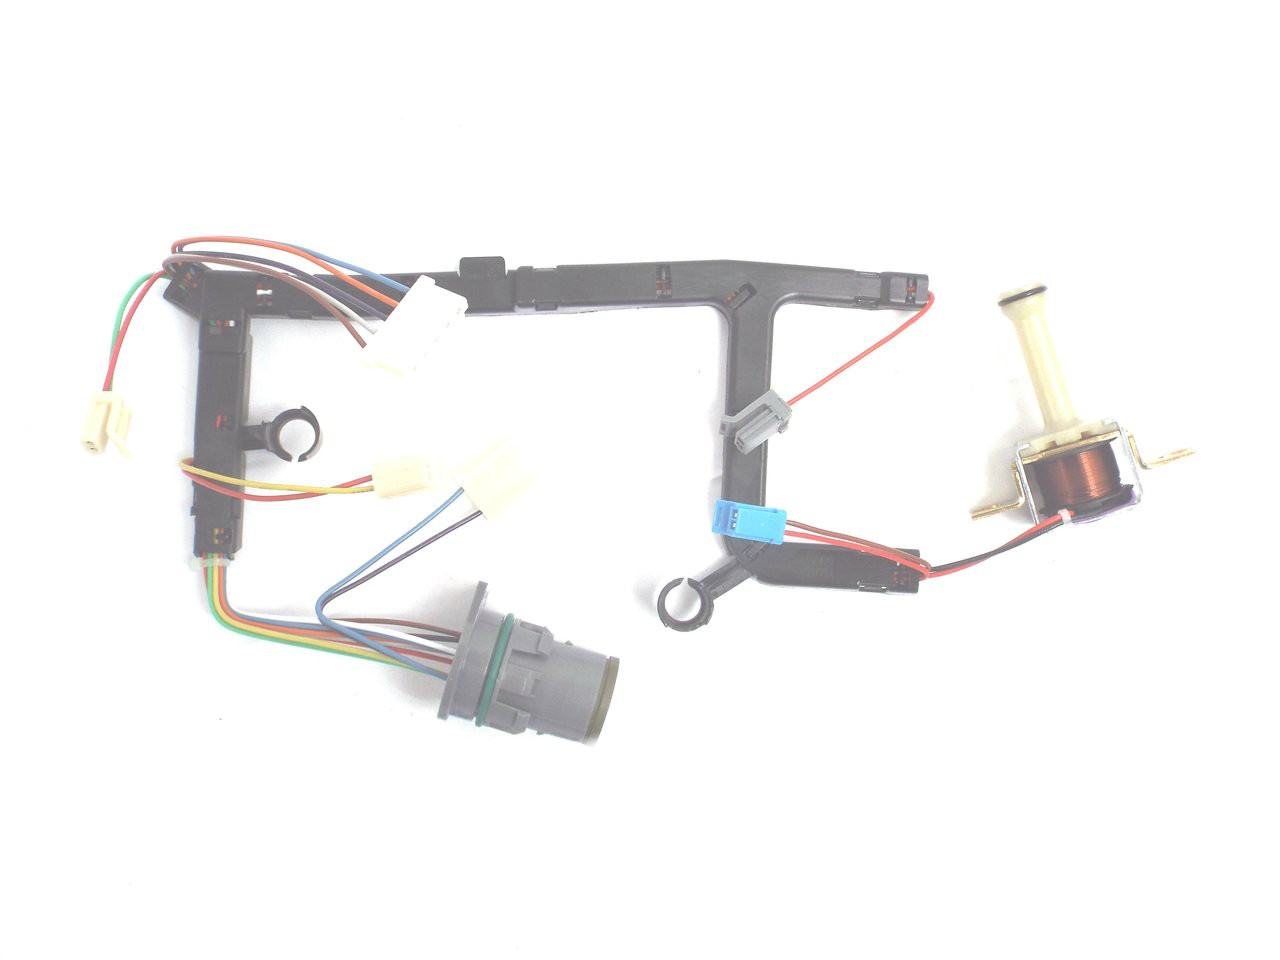 4l60e Tcc Lockup Solenoid Wire Harness 1997 2002 New Fast Shipping Transmission Wiring Gm From Global Parts 2003